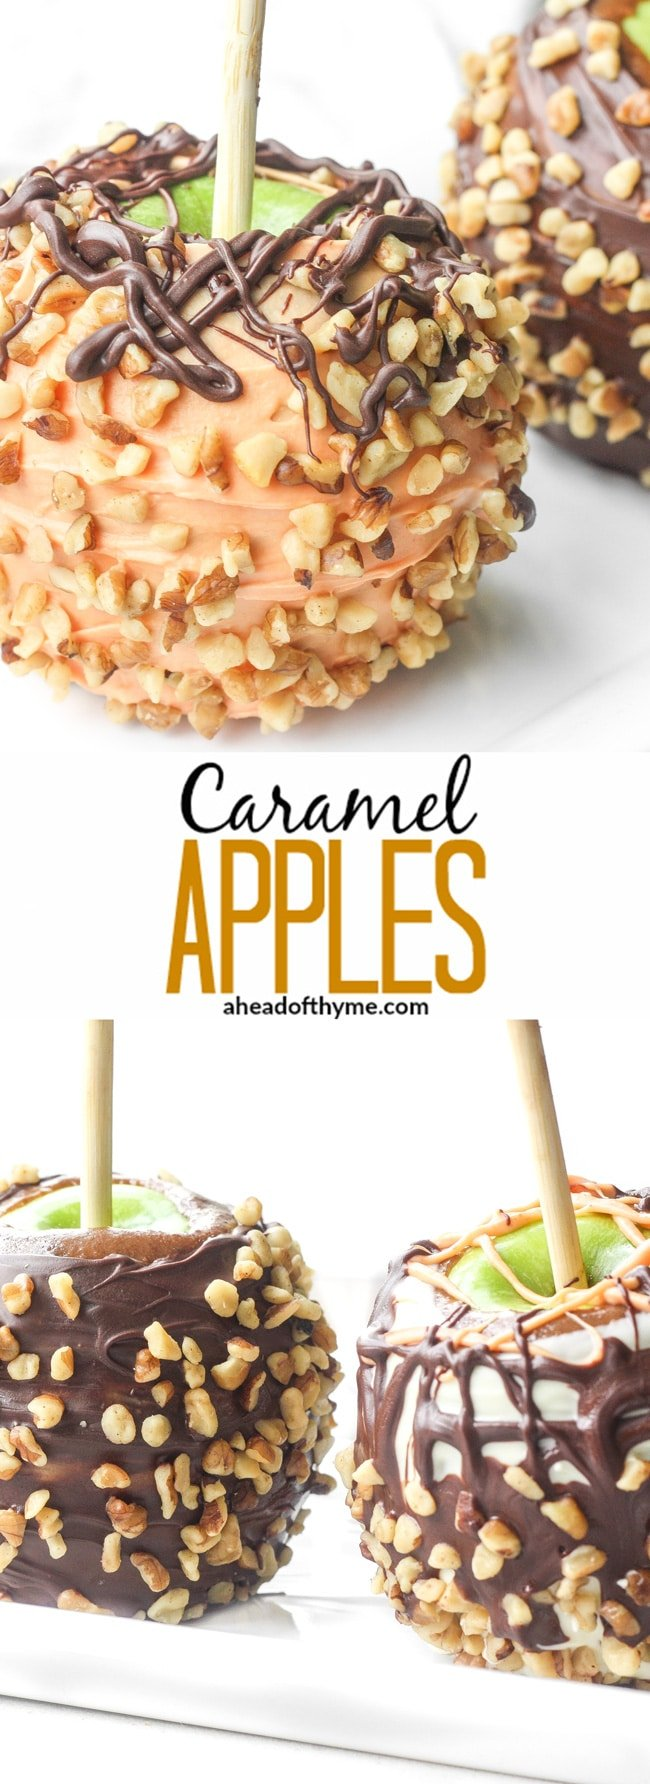 Caramel Apples: Nothing says Halloween better than a classic and traditional fall treat. Learn how to make your own homemade caramel apples today! | aheadofthyme.com